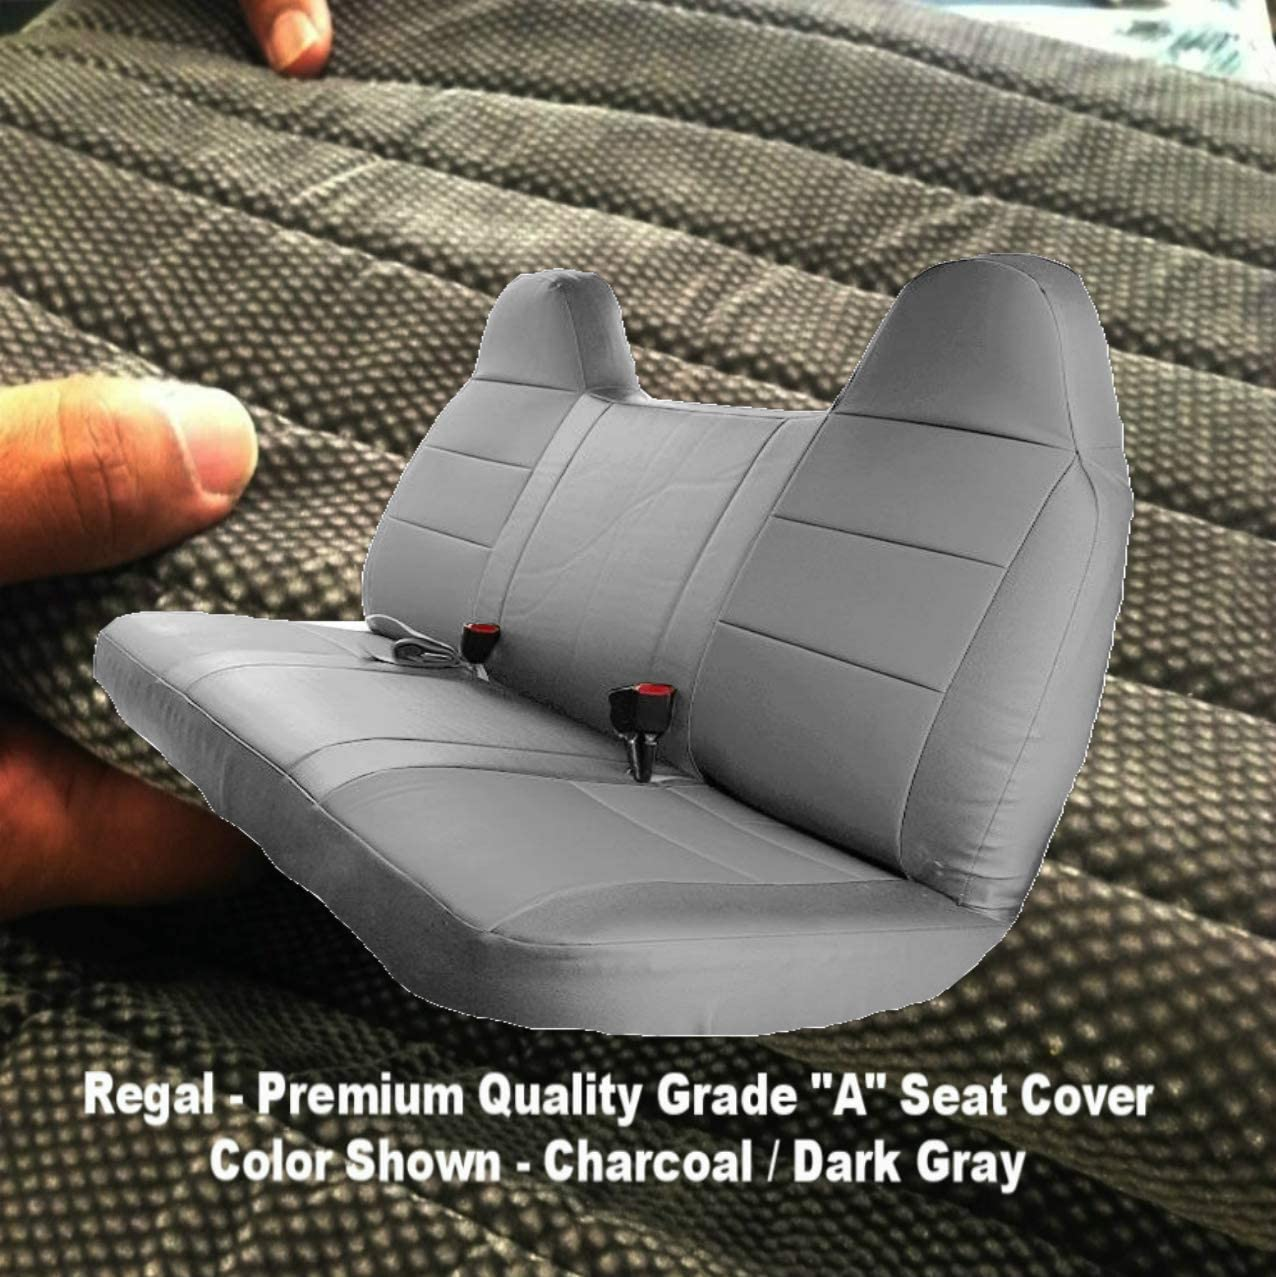 RealSeatCovers 3 Layer for 1992-2010 Ford F-Series F150 - F550 Pickup Truck Front Solid Bench 10mm Thick F23 High Back Belt Cut Out Custom Made Fit (Dark Gray)